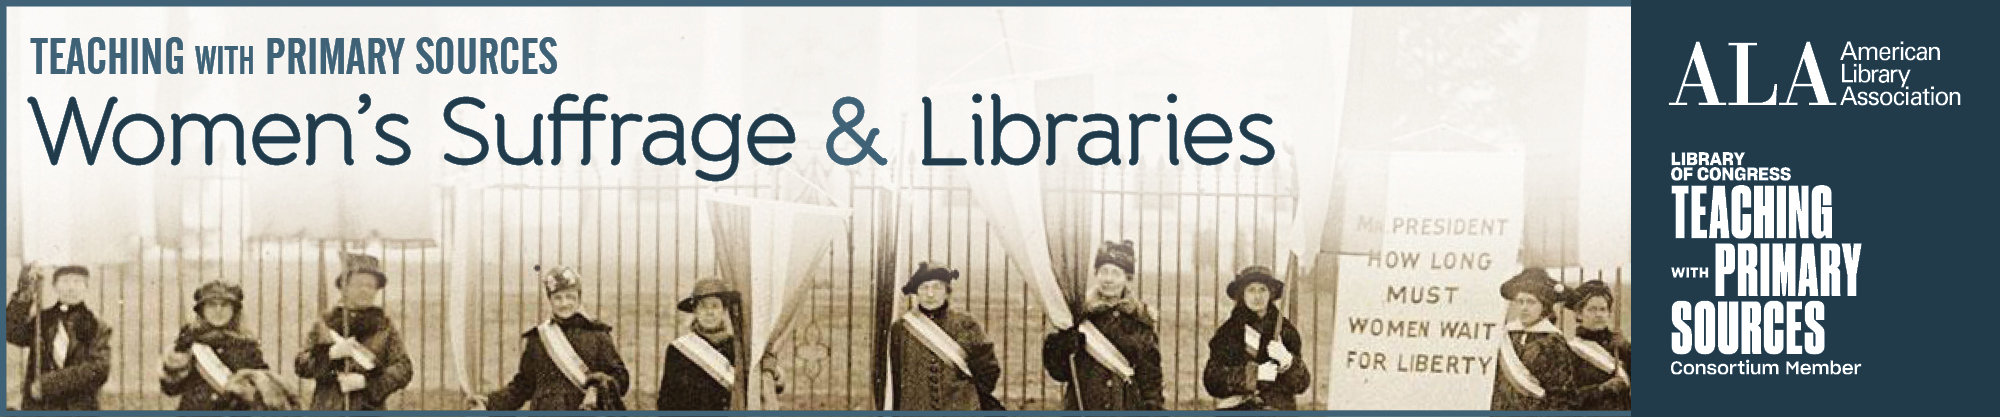 Text reads: Teaching with Primary Sources: Women's Suffrage & Libraries. Black and white photo of suffragettes outside of the White House. ALA logo. Library of Congress Teaching with Primary Sources Consortium Member logo. Original Image Credit: Harris & Ewing. Penn[sylvania] on the picket line, [January 24,] 1917. Reproduction. NWP Records, Manuscript Division, Library of Congress (327.00.00)